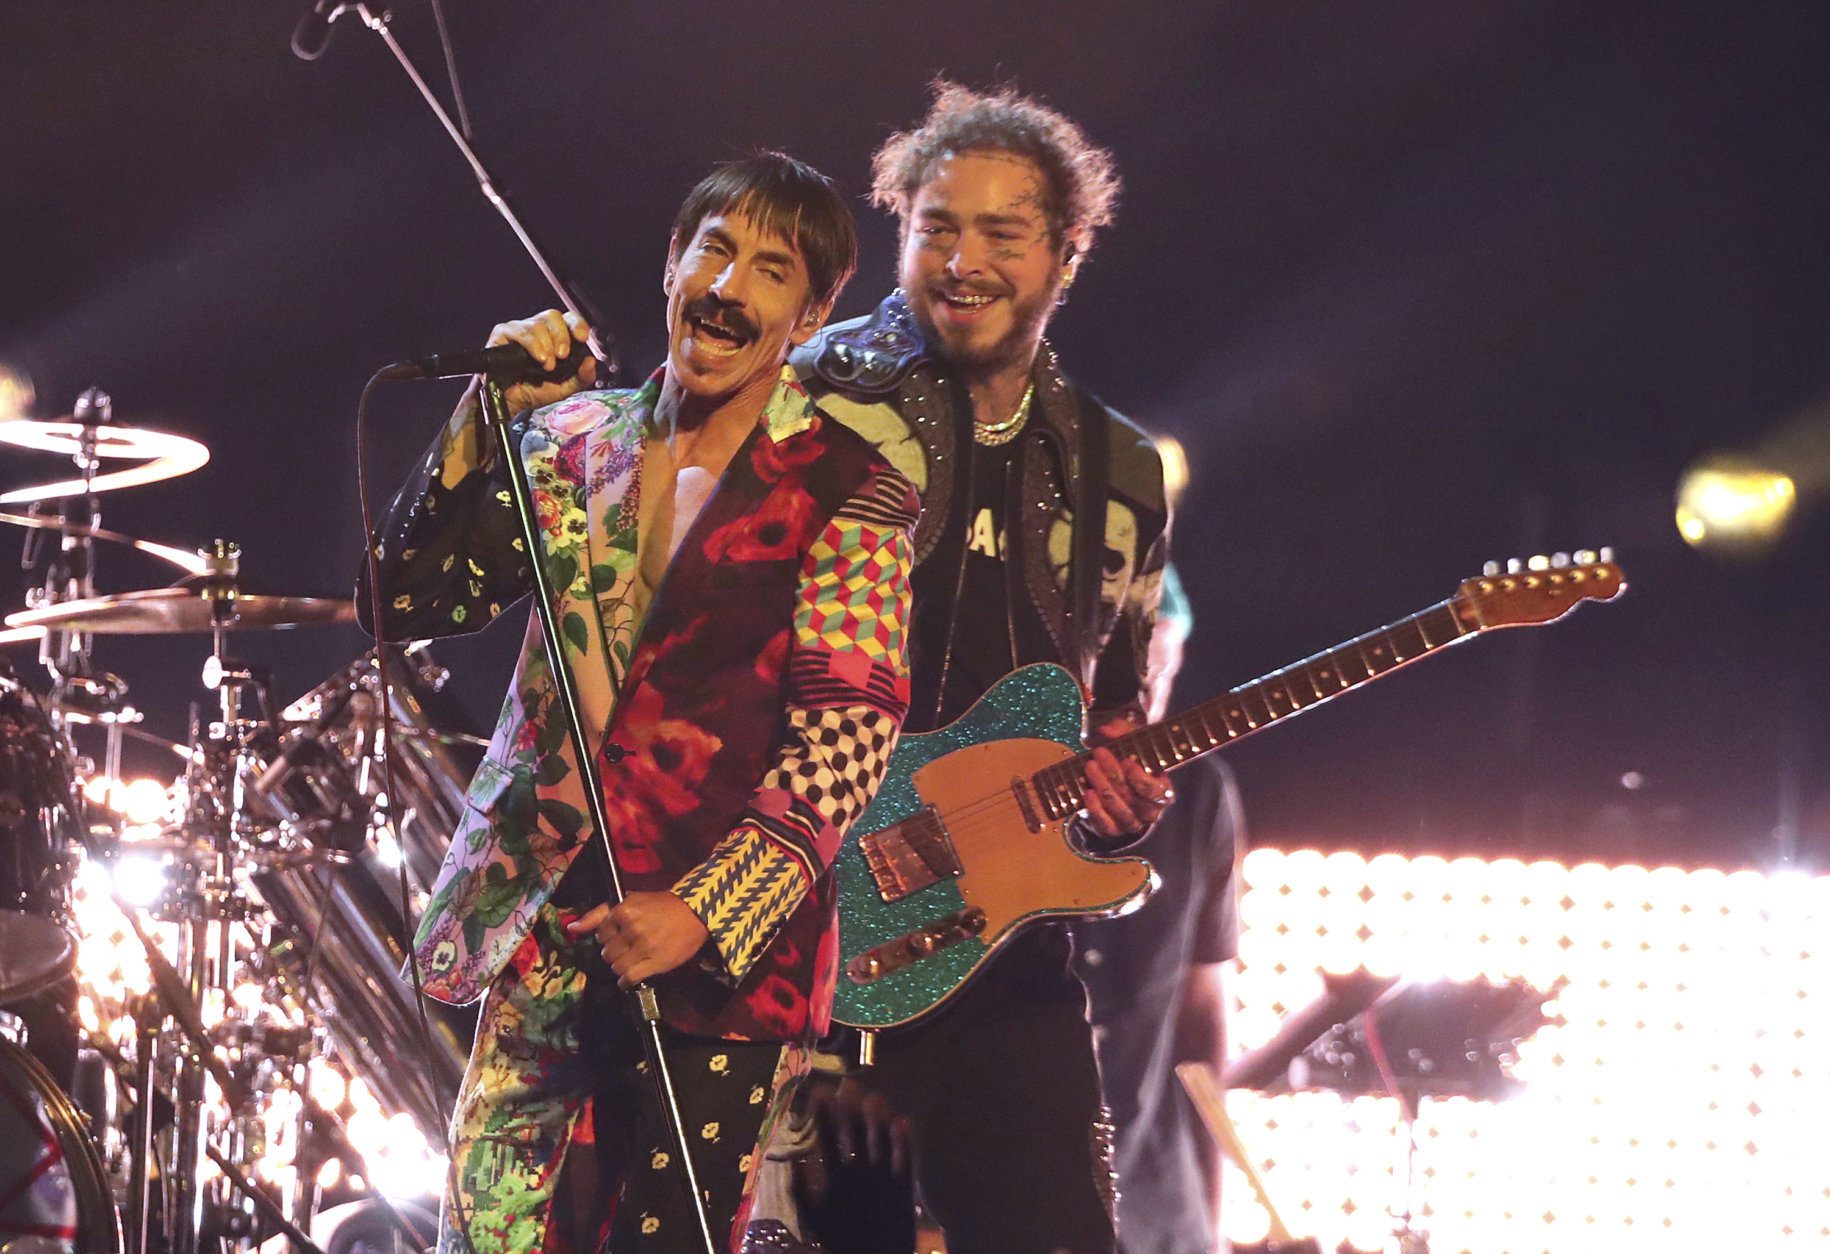 Anthony Kiedis, left, of Red Hot Chili Peppers, and Post Malone perform a medley at the 61st annual Grammy Awards on Sunday, Feb. 10, 2019, in Los Angeles. (Photo by Matt Sayles/Invision/AP)